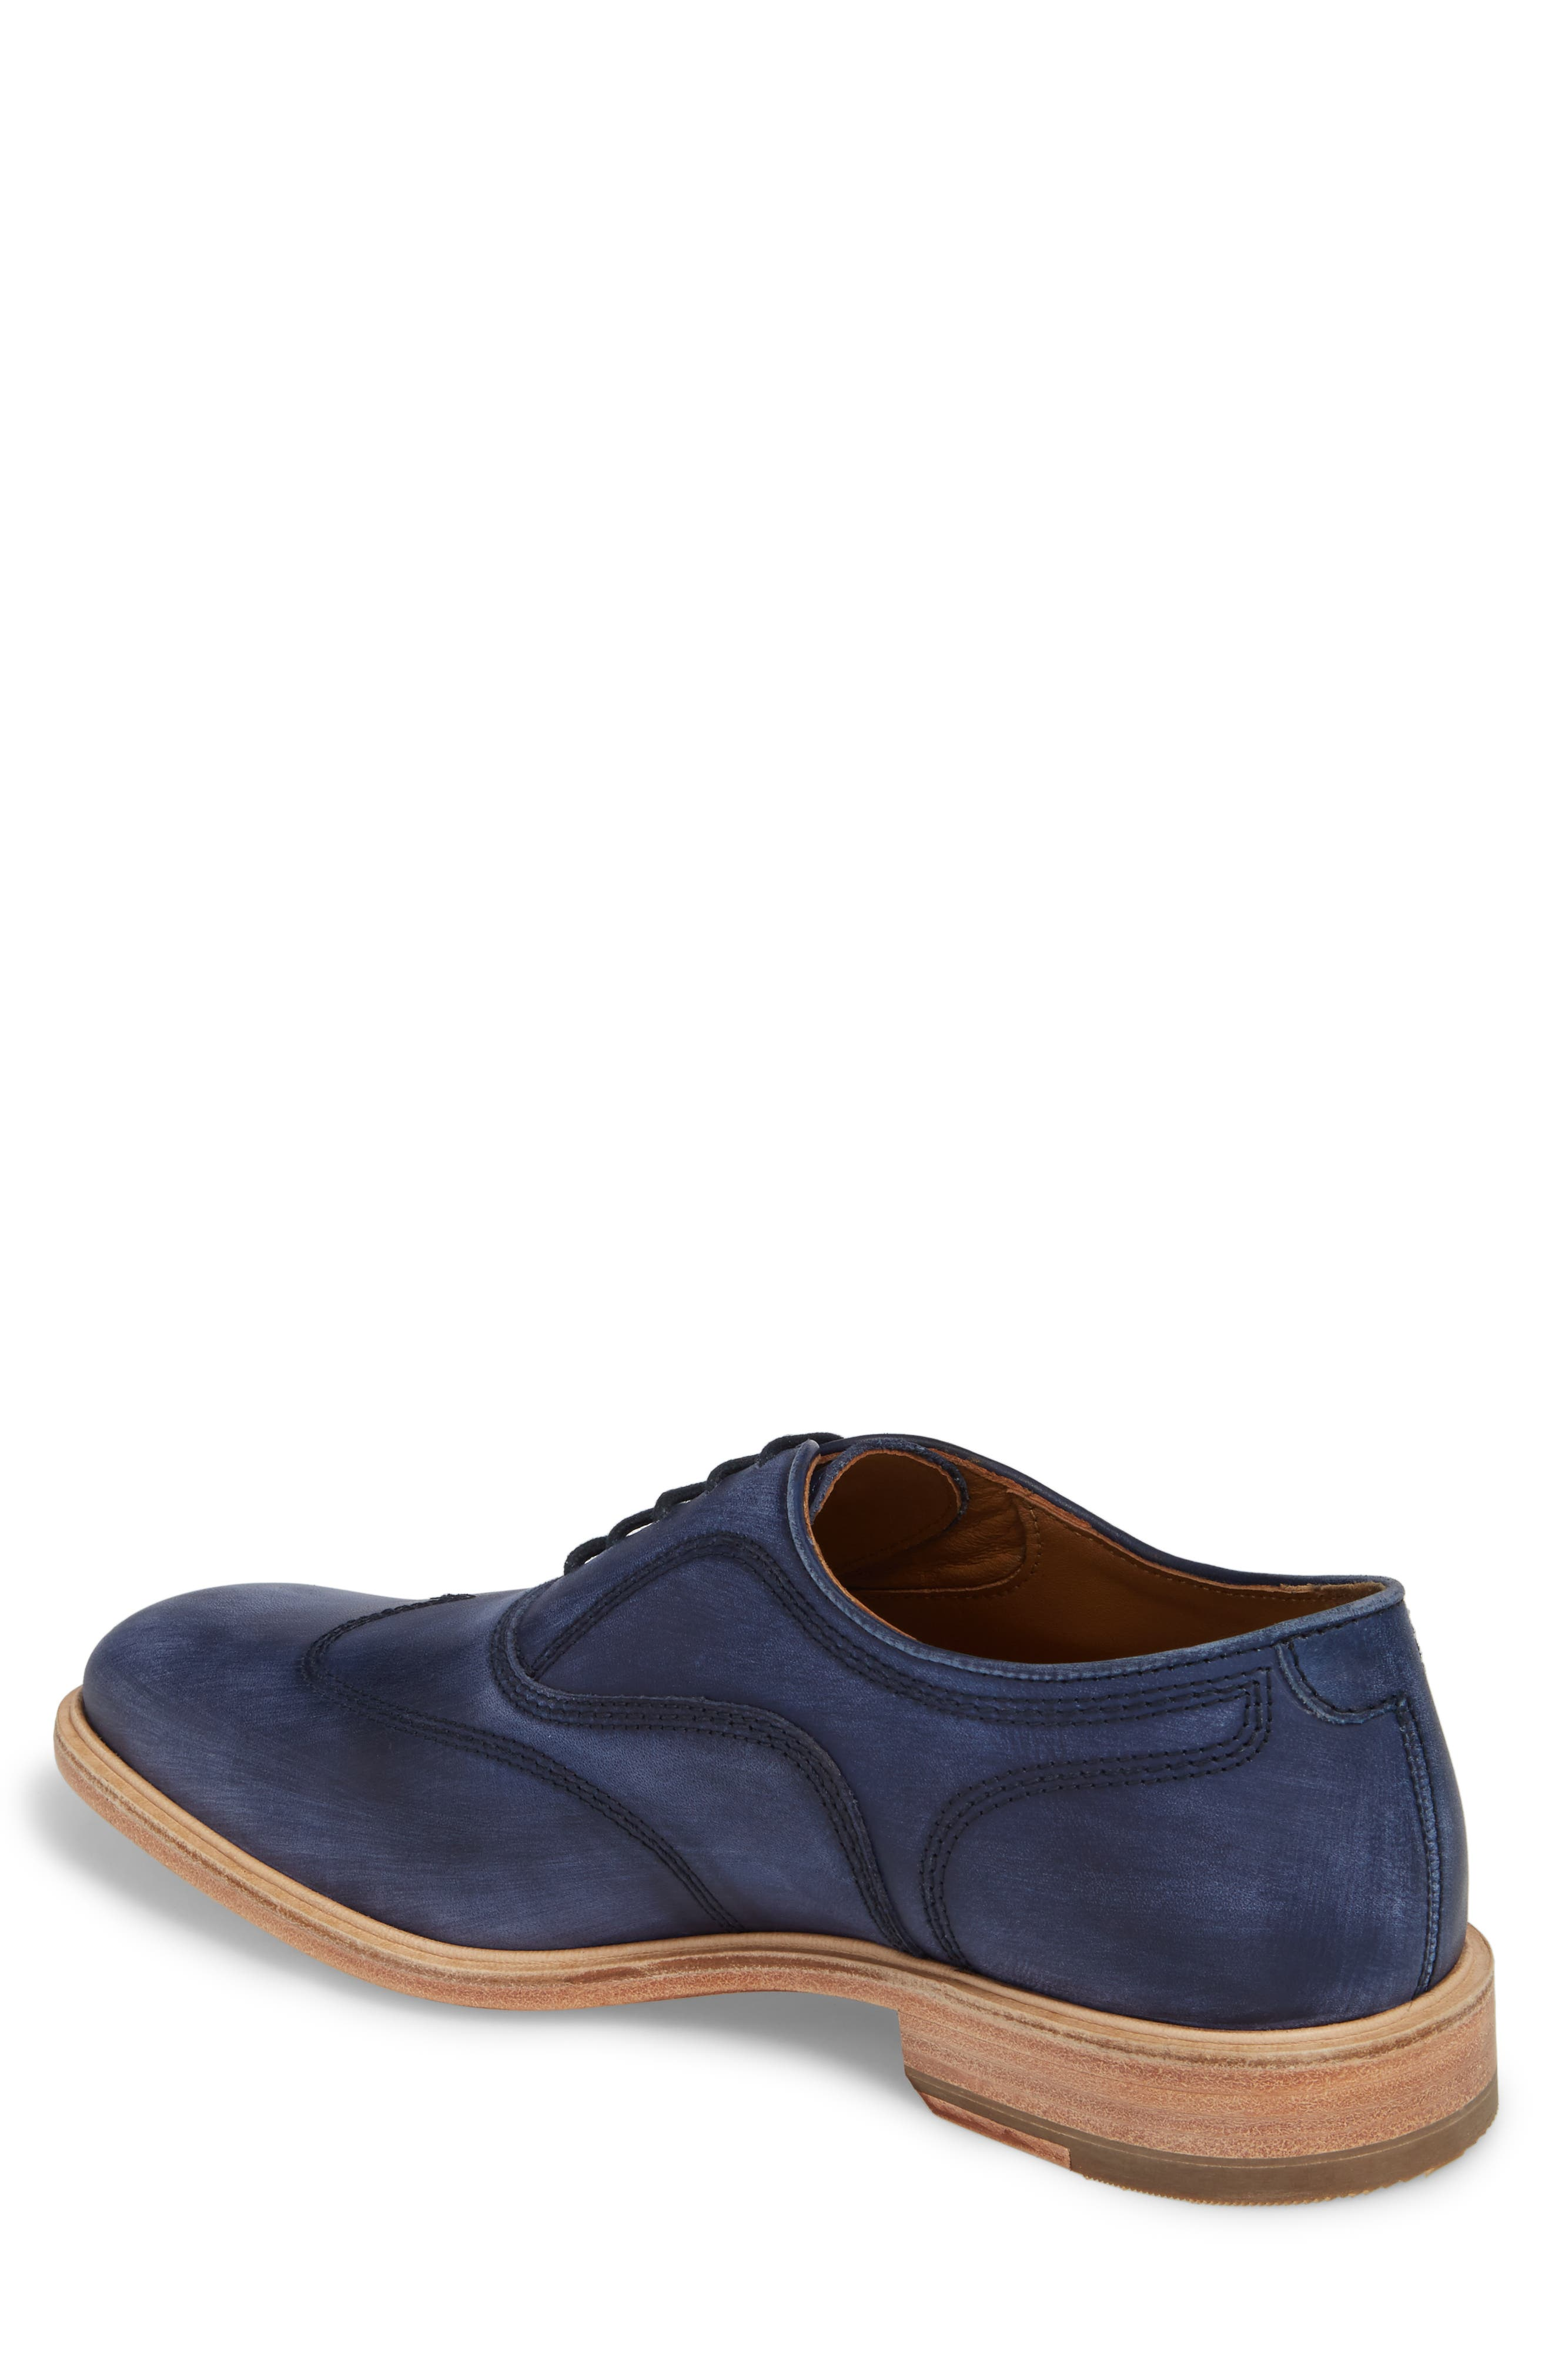 Chambliss Wingtip Oxford,                             Alternate thumbnail 2, color,                             Navy Leather